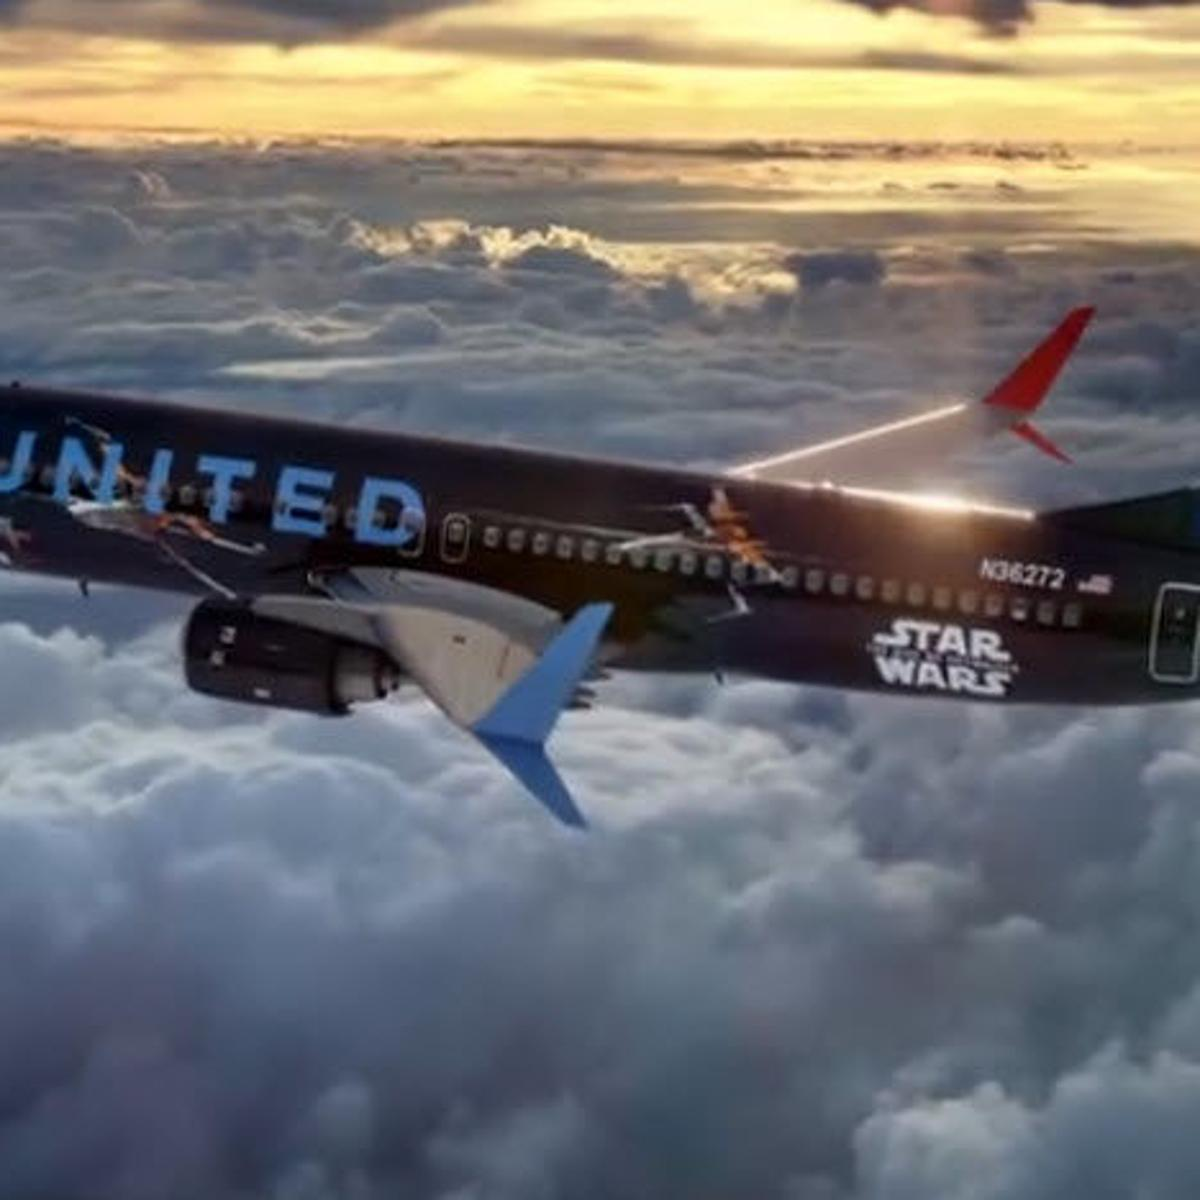 United Airlines Star Wars Plane Takes Flight In November Featured Articles Azfamily Com